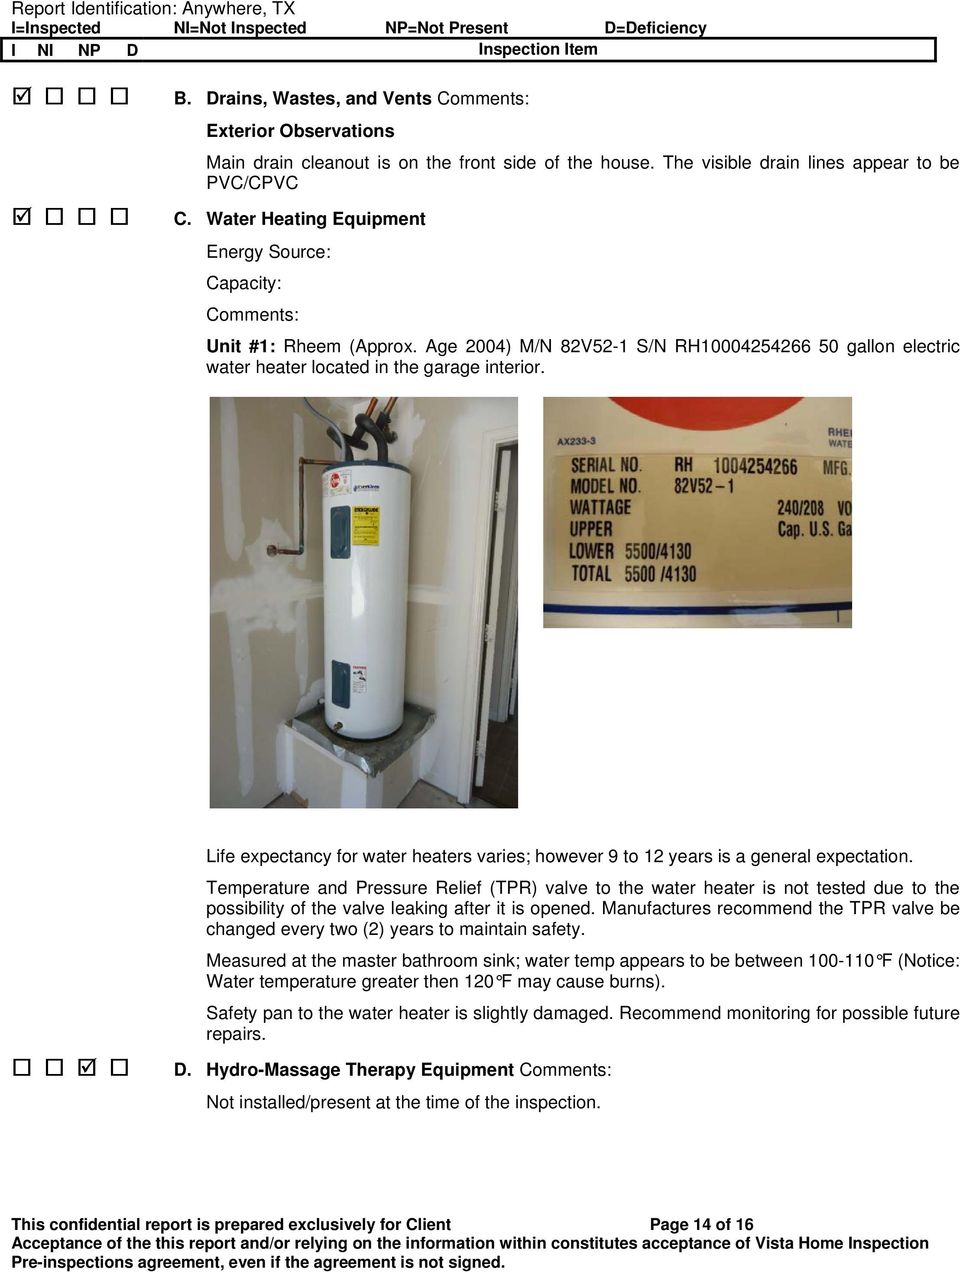 Life expectancy for water heaters varies; however 9 to 12 years is a general expectation.